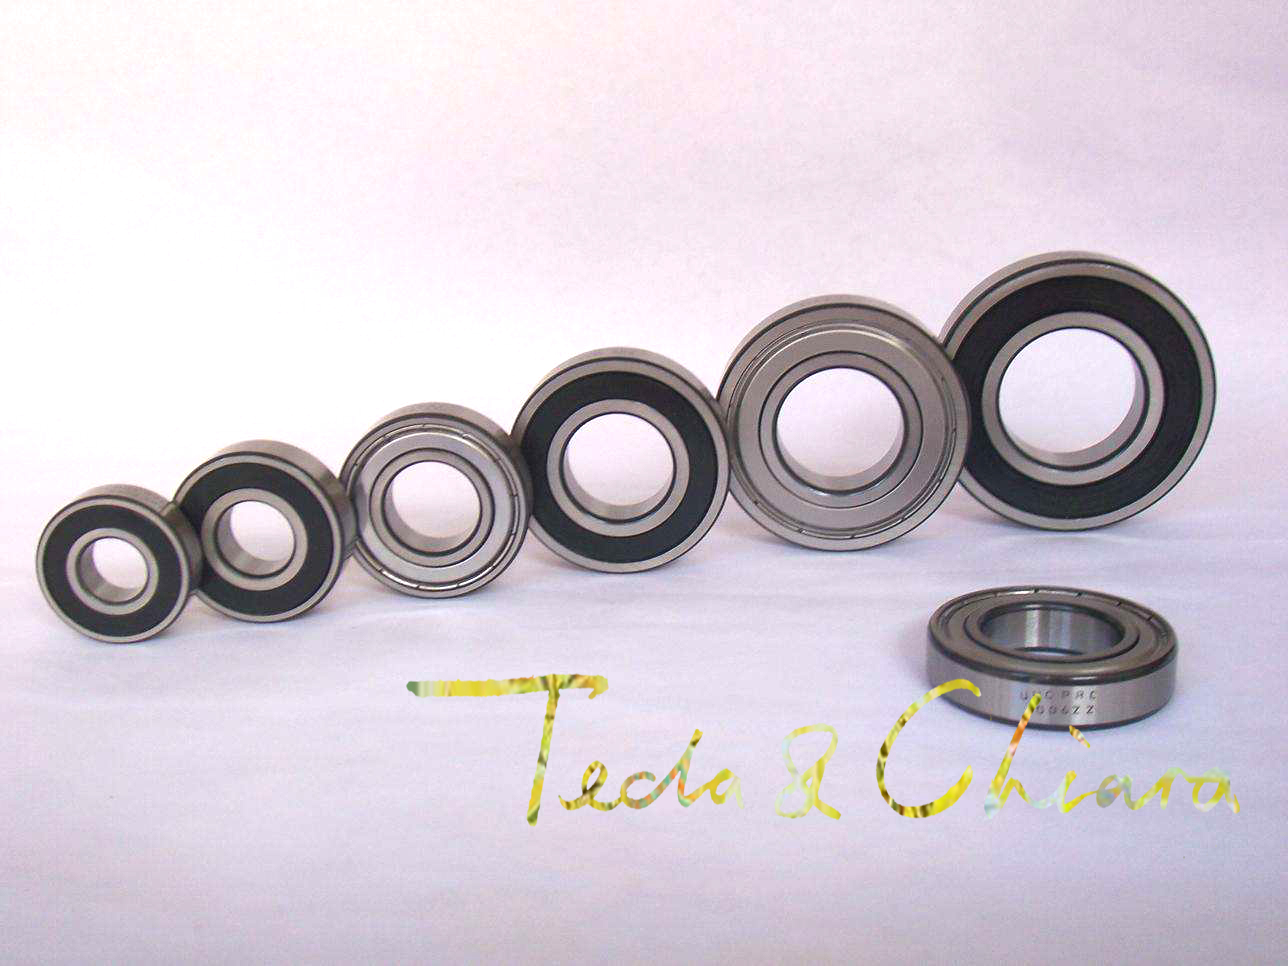 MR148 MR148ZZ MR148RS MR148-2Z MR148Z MR148-2RS ZZ RS RZ 2RZ L-1480ZZ Deep Groove Ball Bearings 8 X 14 X 4mm